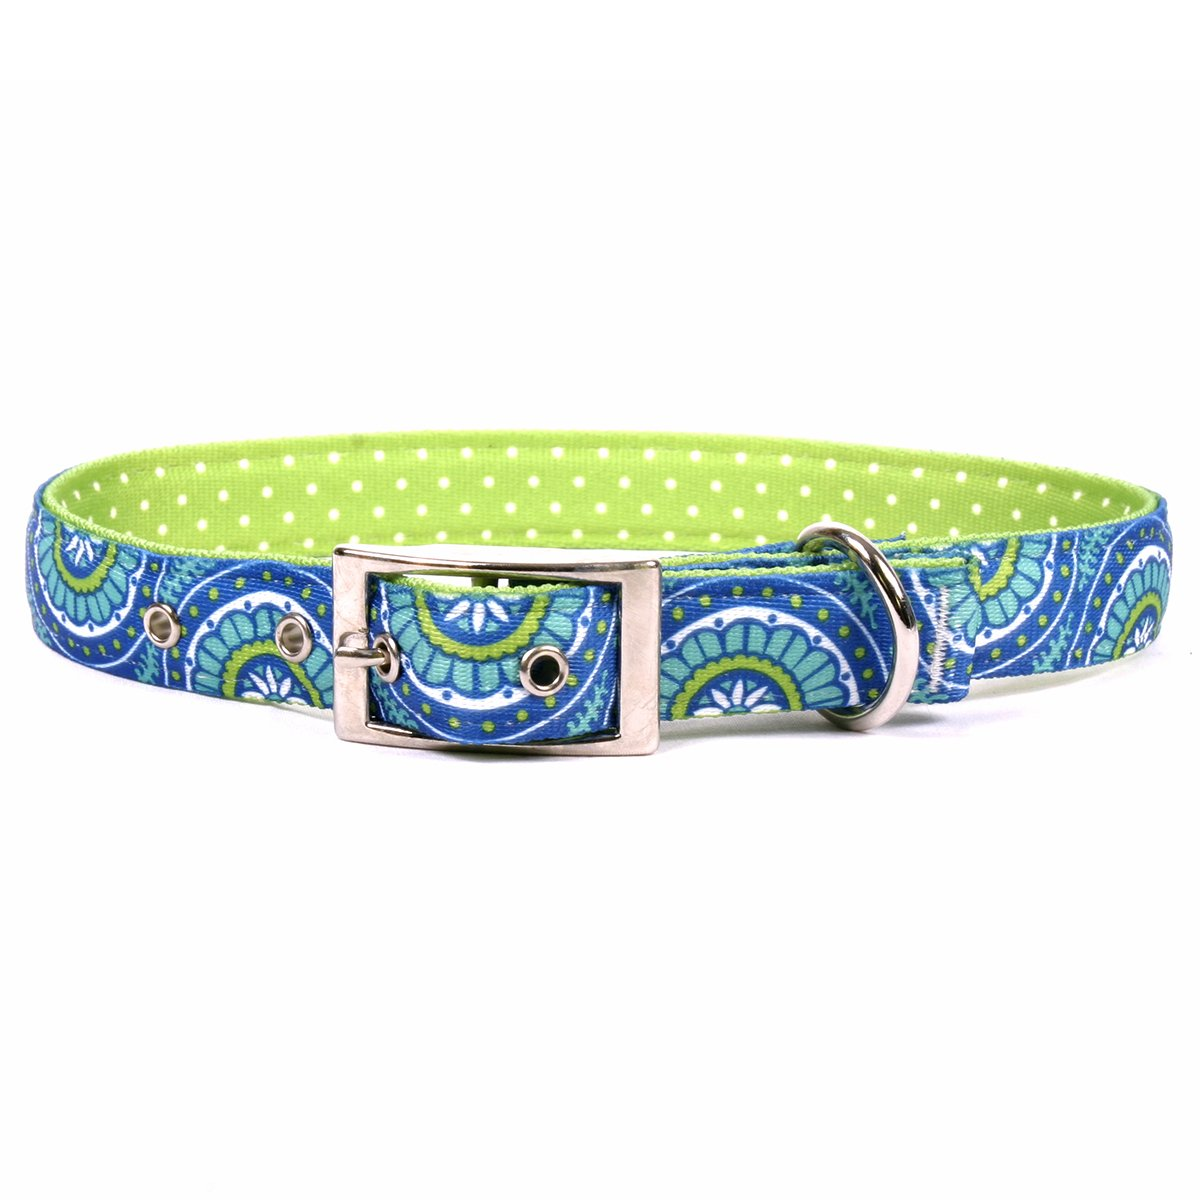 Medium 19\ Yellow Dog Design Radiance bluee Uptown Dog Collar, Medium-1  wide and fits neck sizes 15 to 18.5